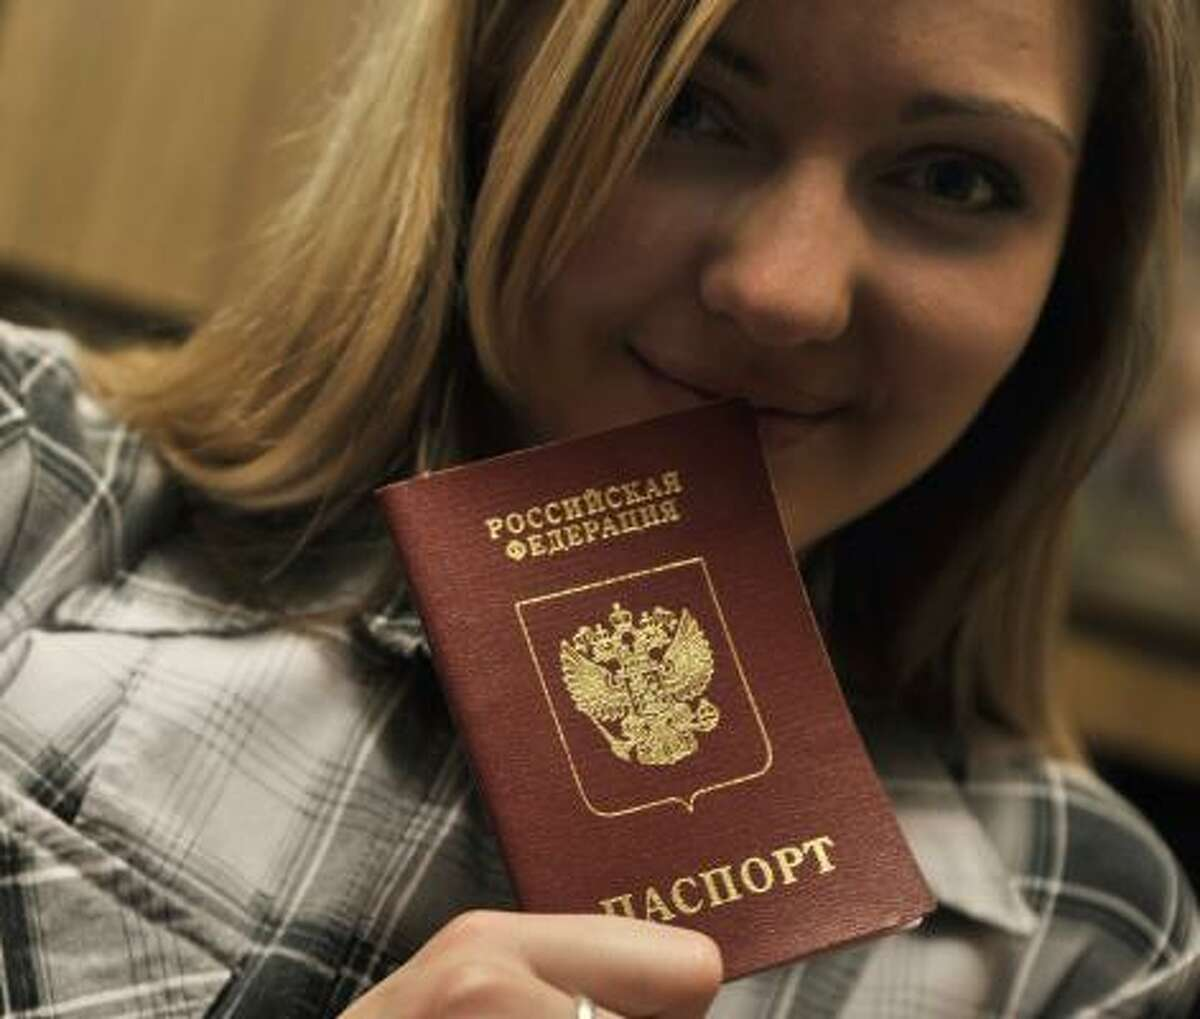 Sasha Arshinova of Transnistria, a separatist province, shows a prized possession — a Russian passport.